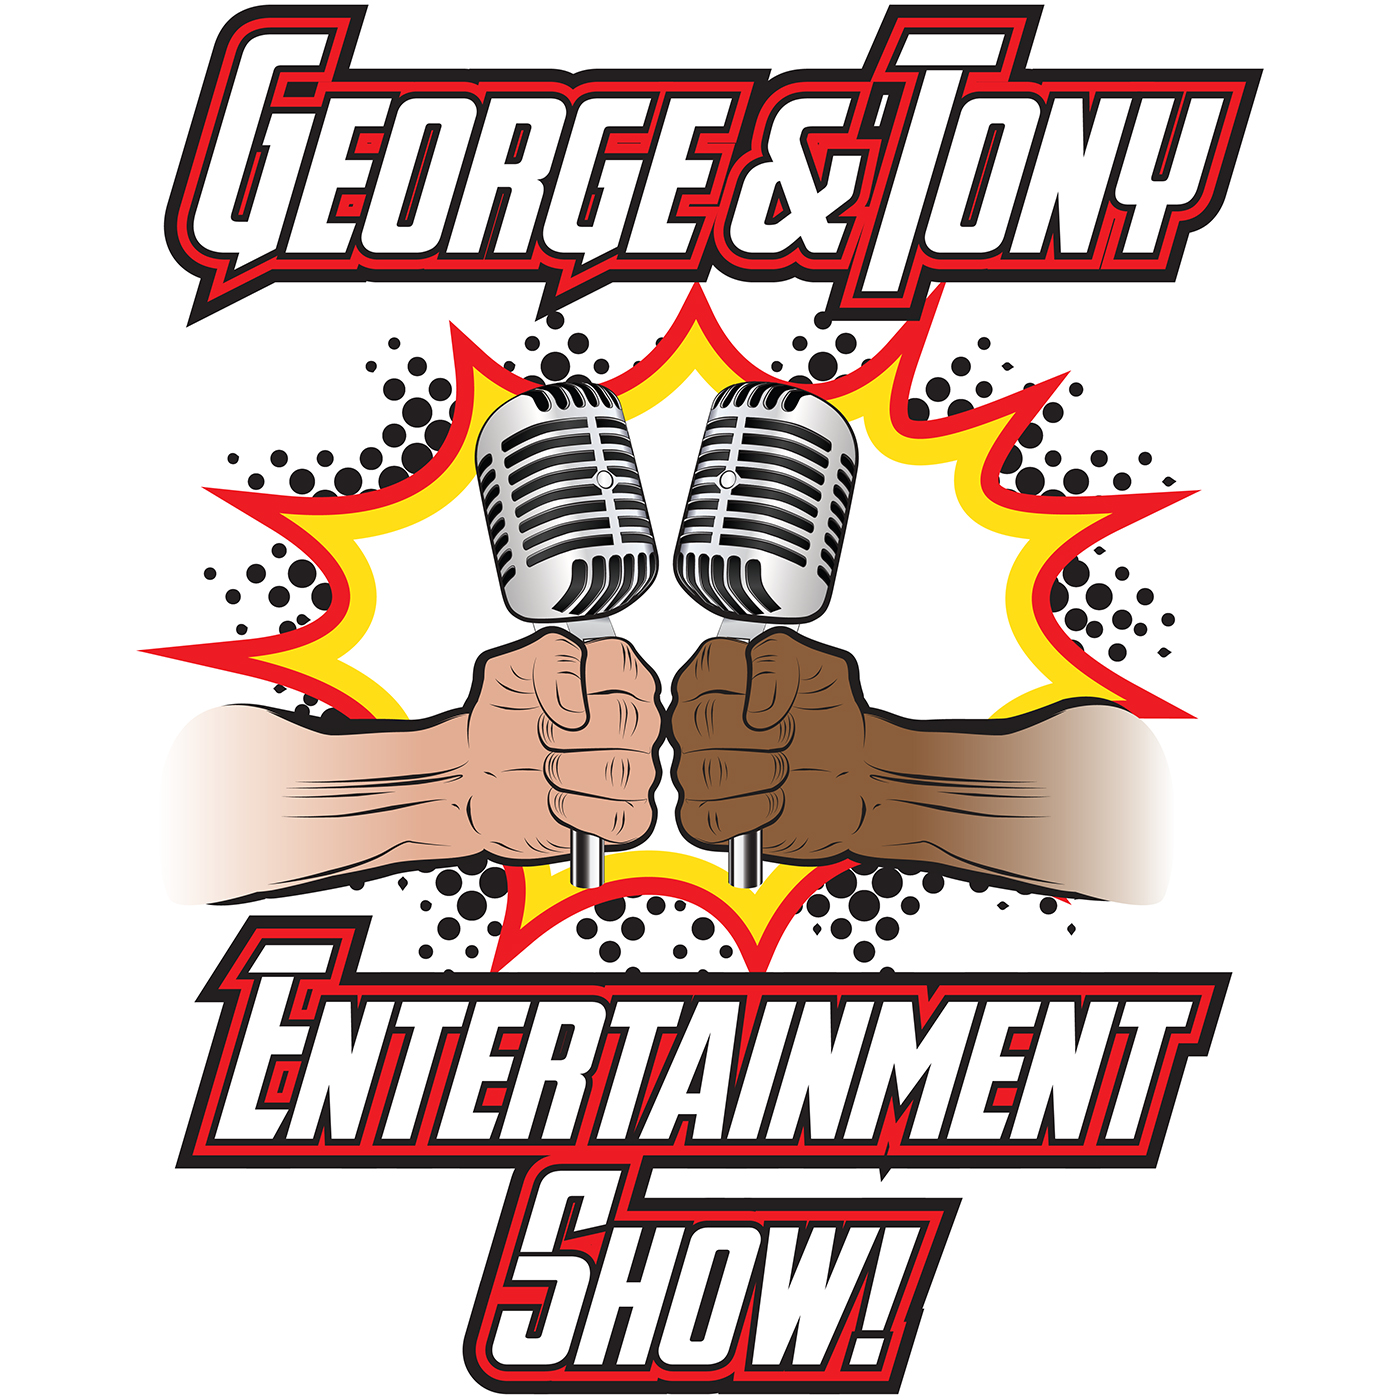 George and Tony Entertainment Show #21